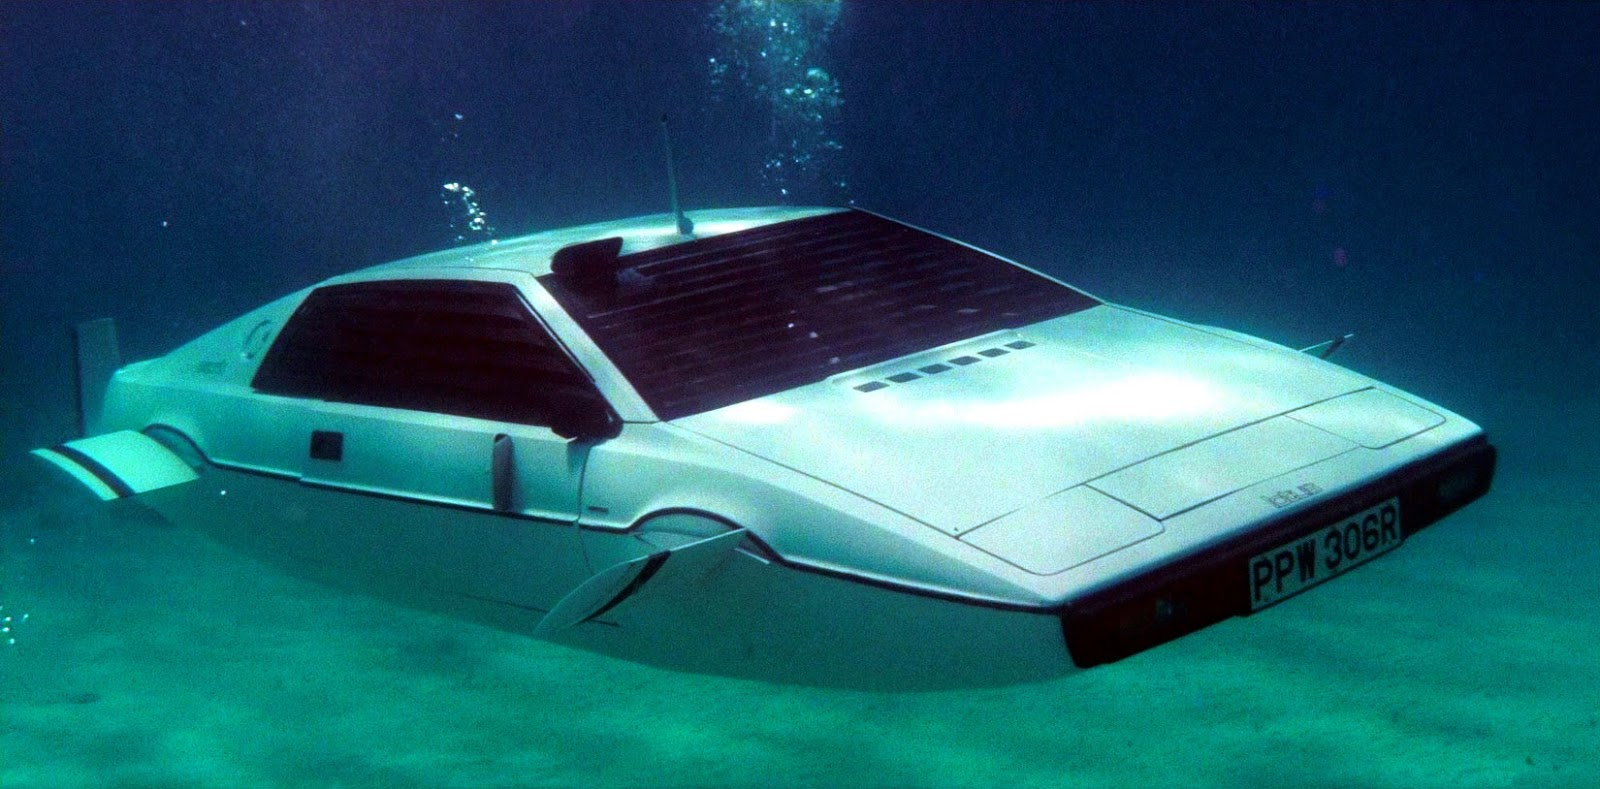 The Lotus Esprit that converts to a submarine in The Spy Who Loved Me (1977)